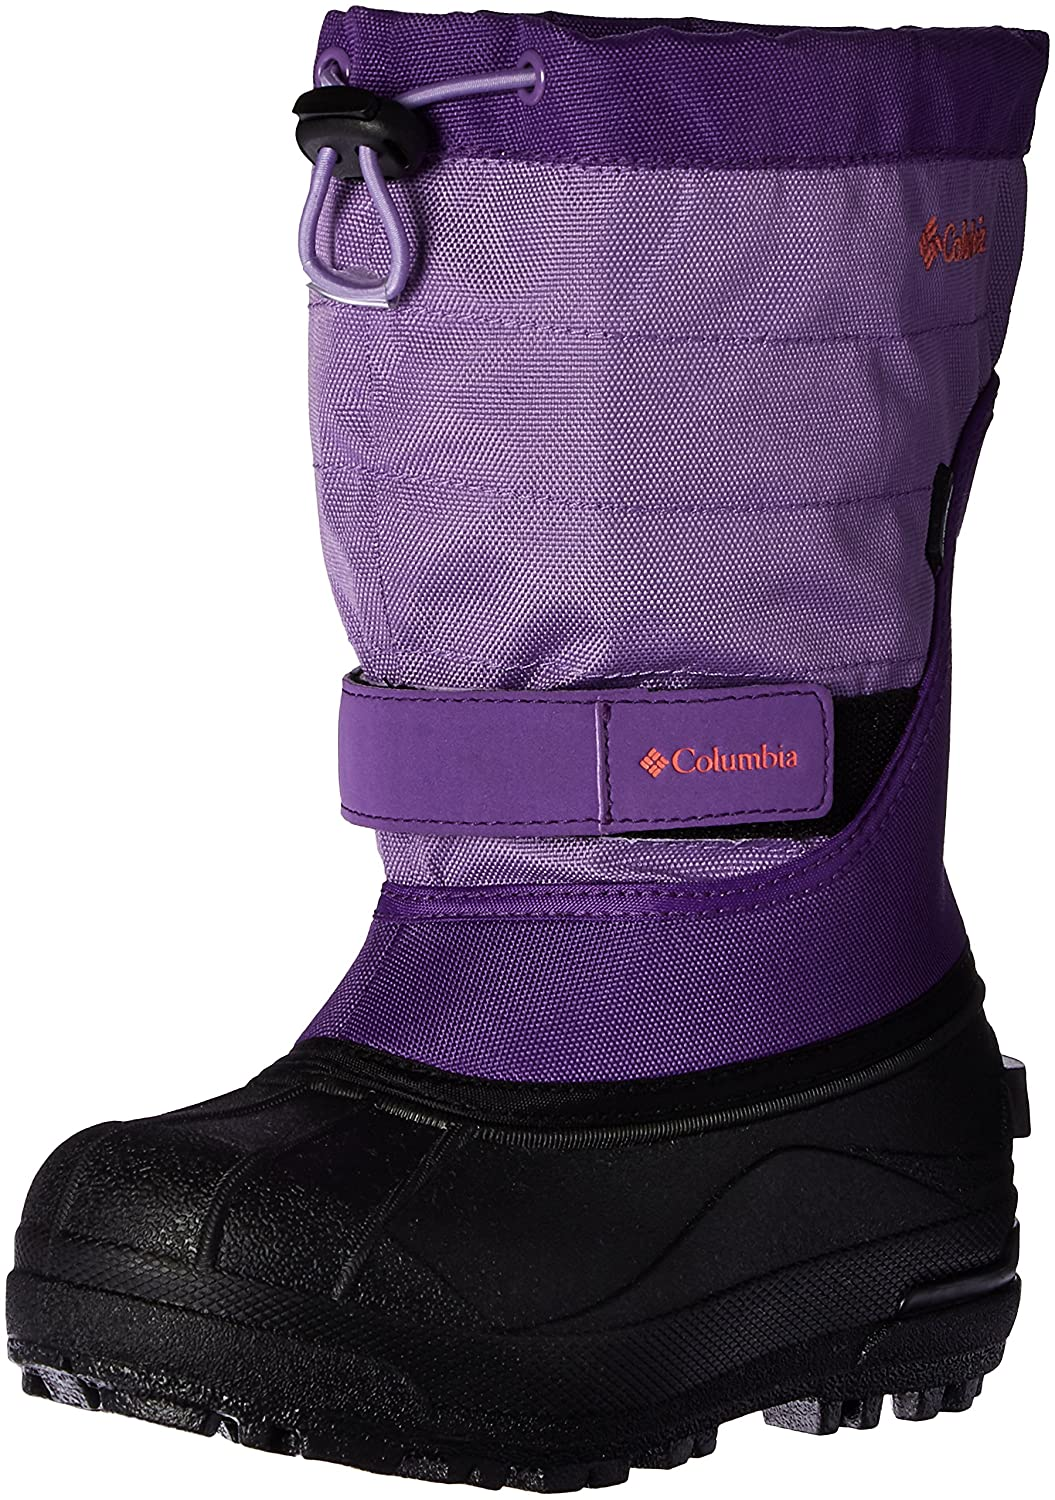 Columbia Youth Powderbug Plus II-K Snow Boot YOUTH POWDERBUGTM PLUS II - K